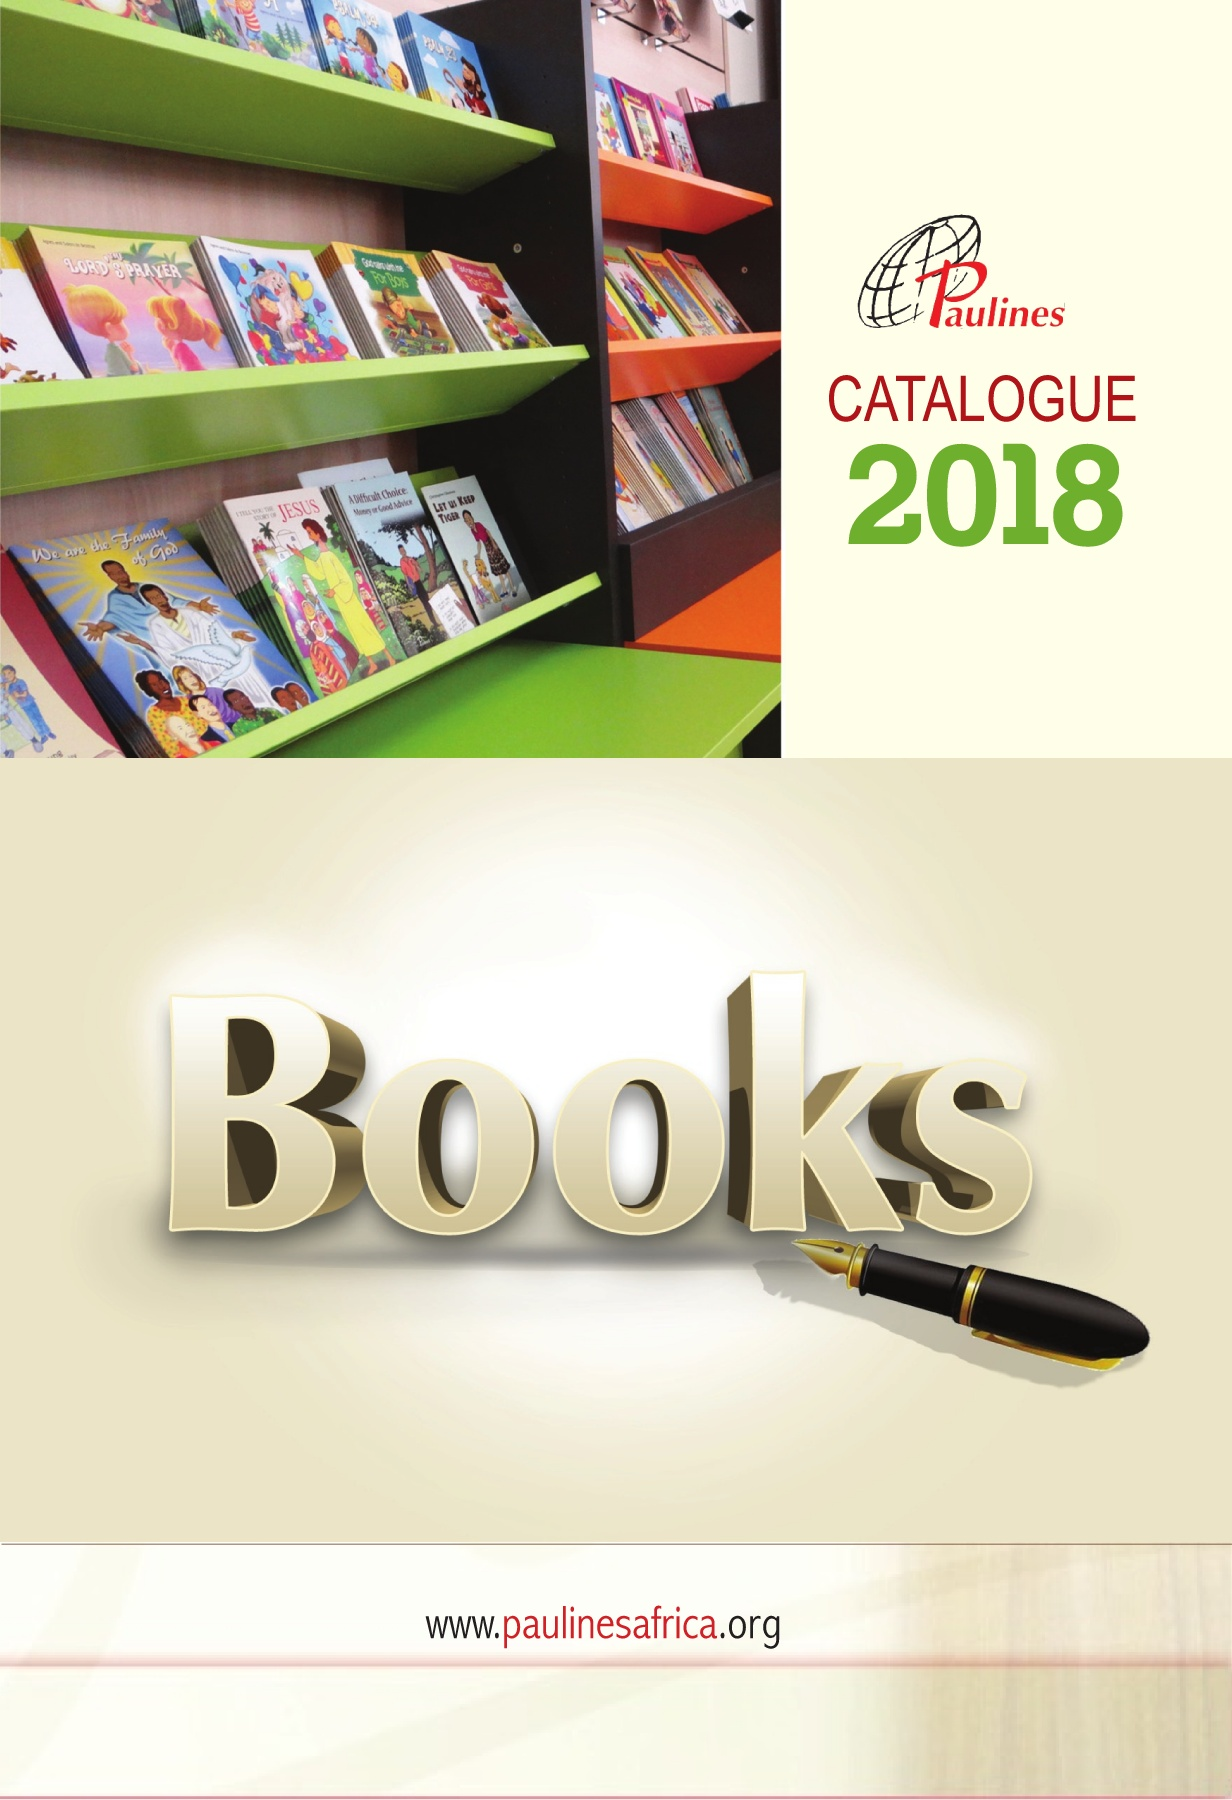 CATALOGUE 2018 Pages 101 - 144 - Text Version | AnyFlip